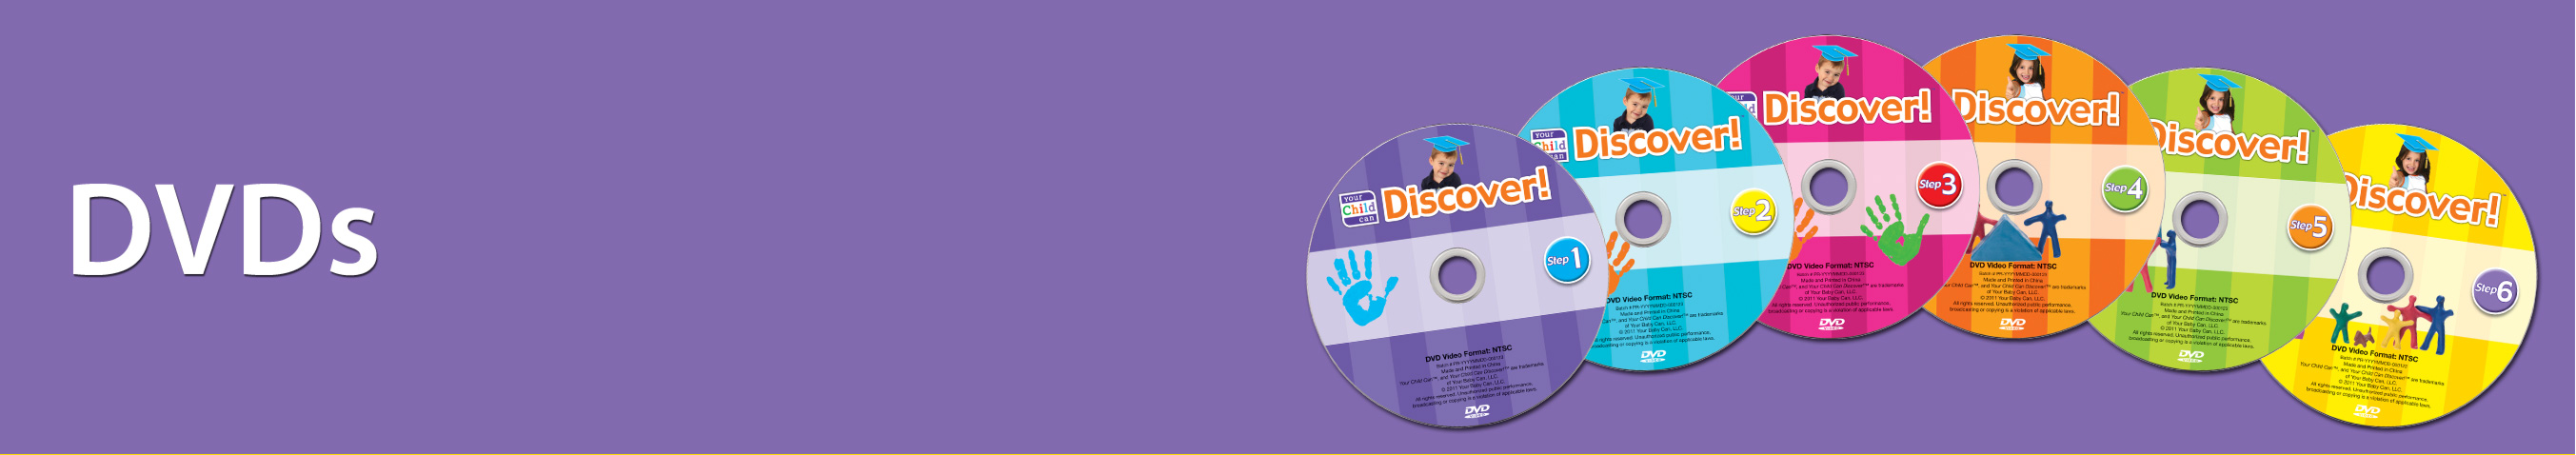 Your Child Can Discover DVDs